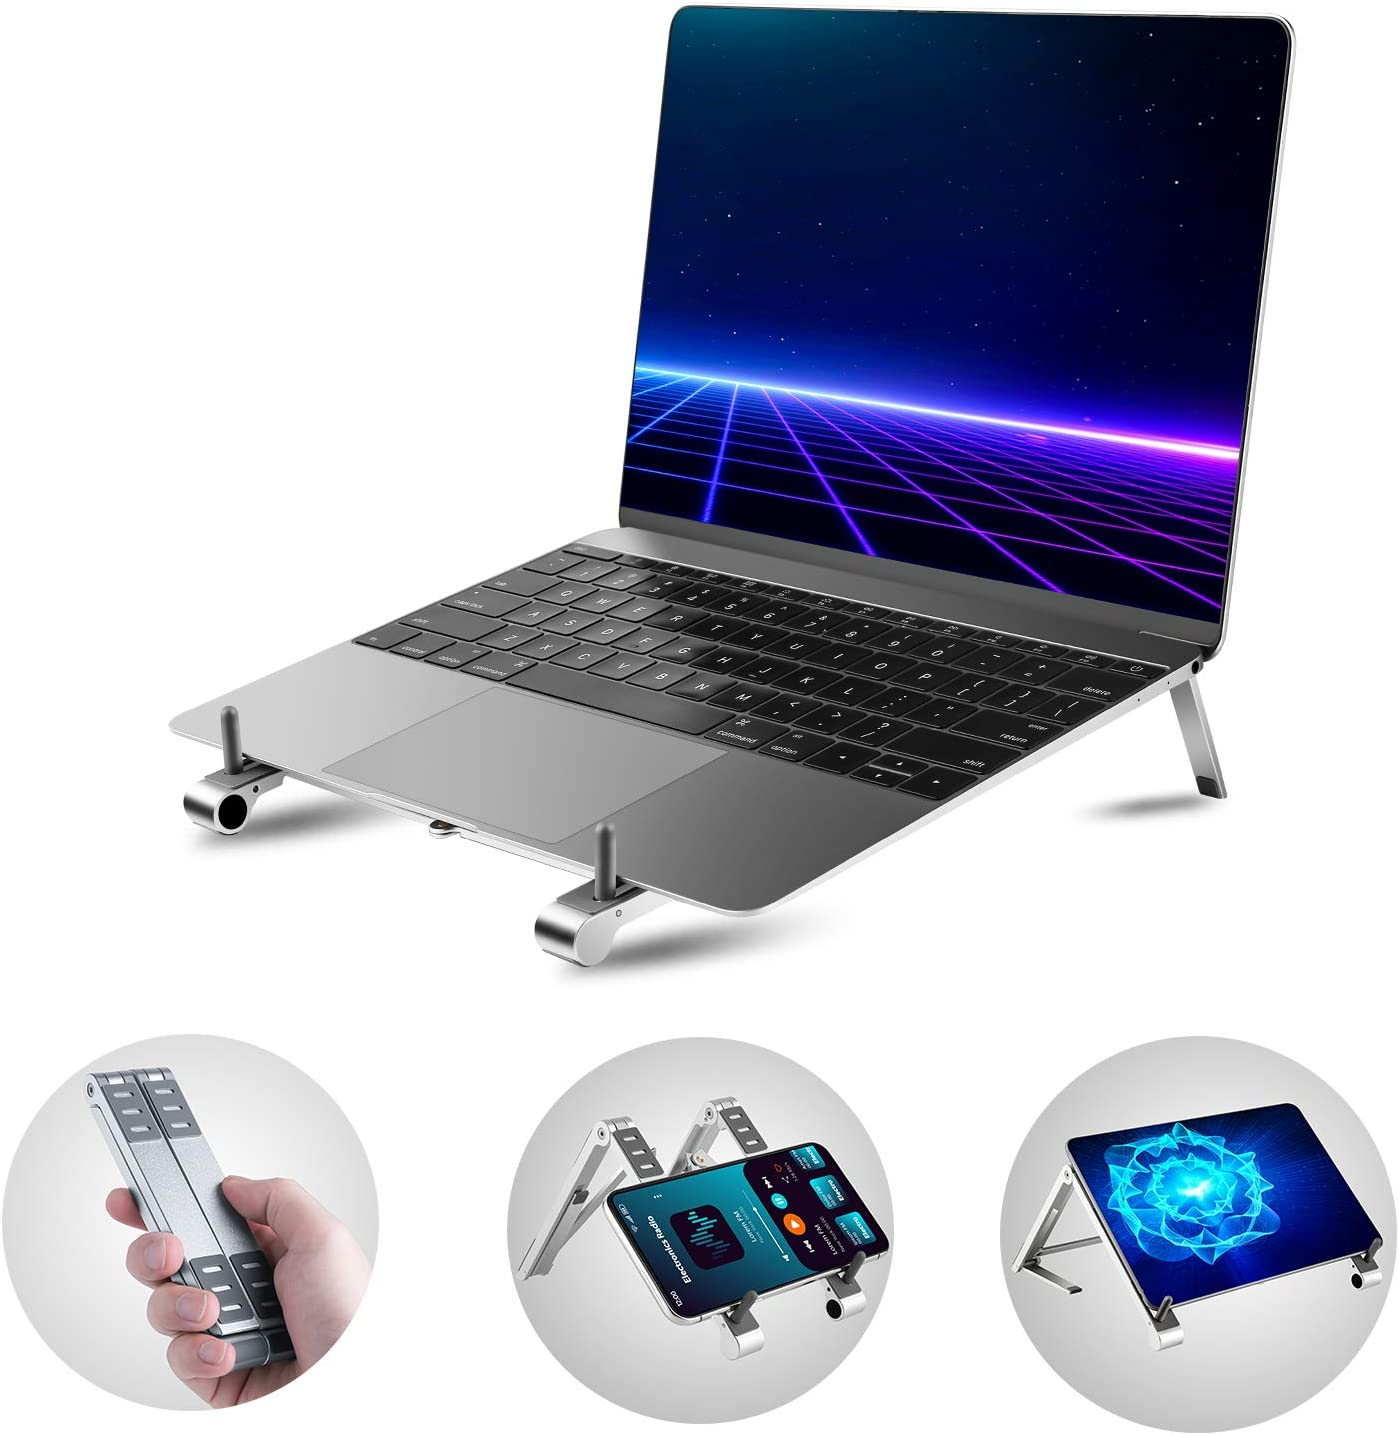 IDEALCRAFT Portable Laptop Stand, Fully Foldable Adjustable Tablet Phone Stands Holder, 3-in-1 Compatible with MacBook iPad and iPhone, FTS-150 Silver